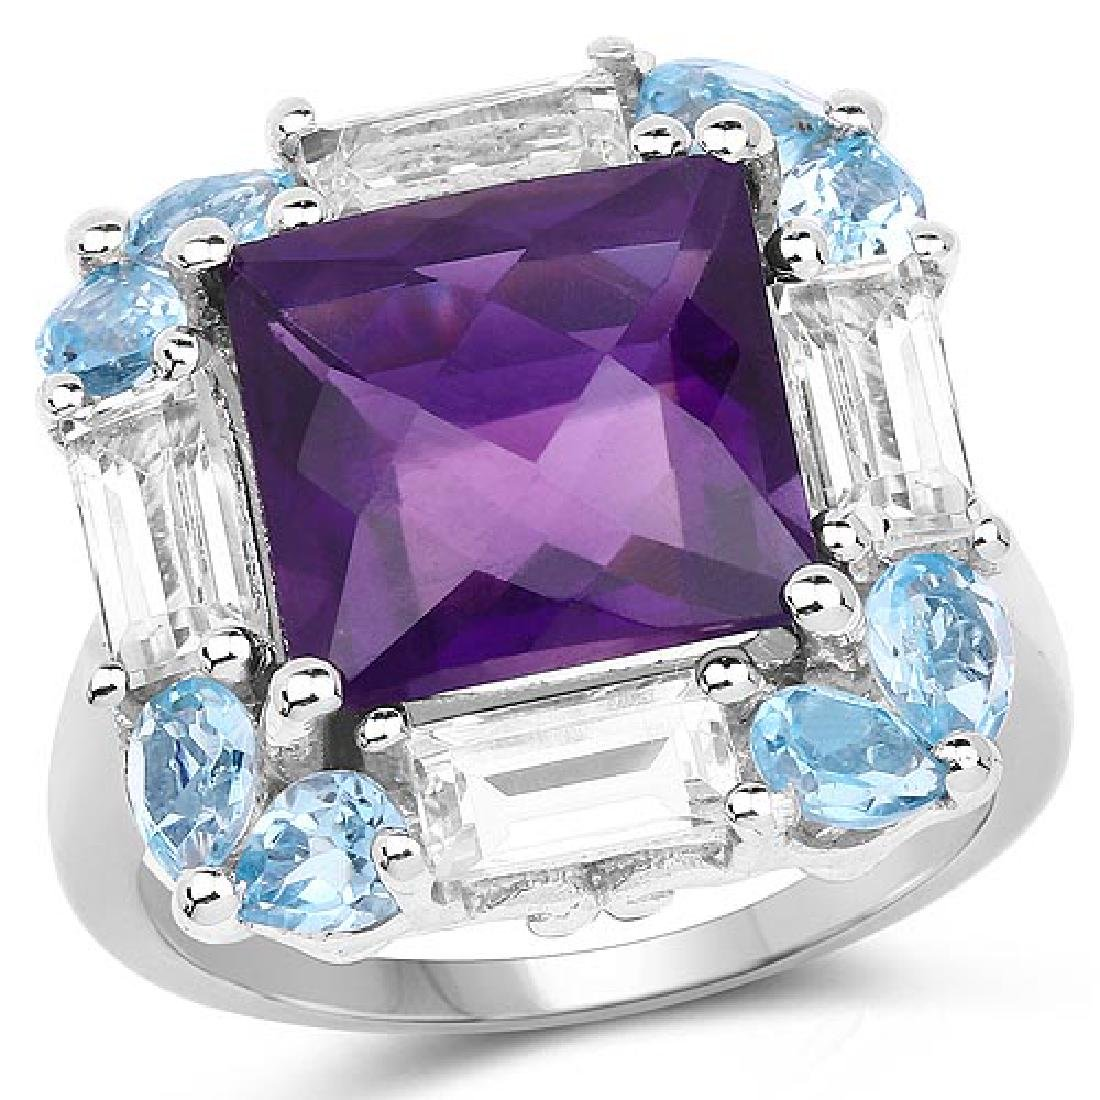 7.51 Carat Genuine Amethyst Swiss Blue Topaz and White